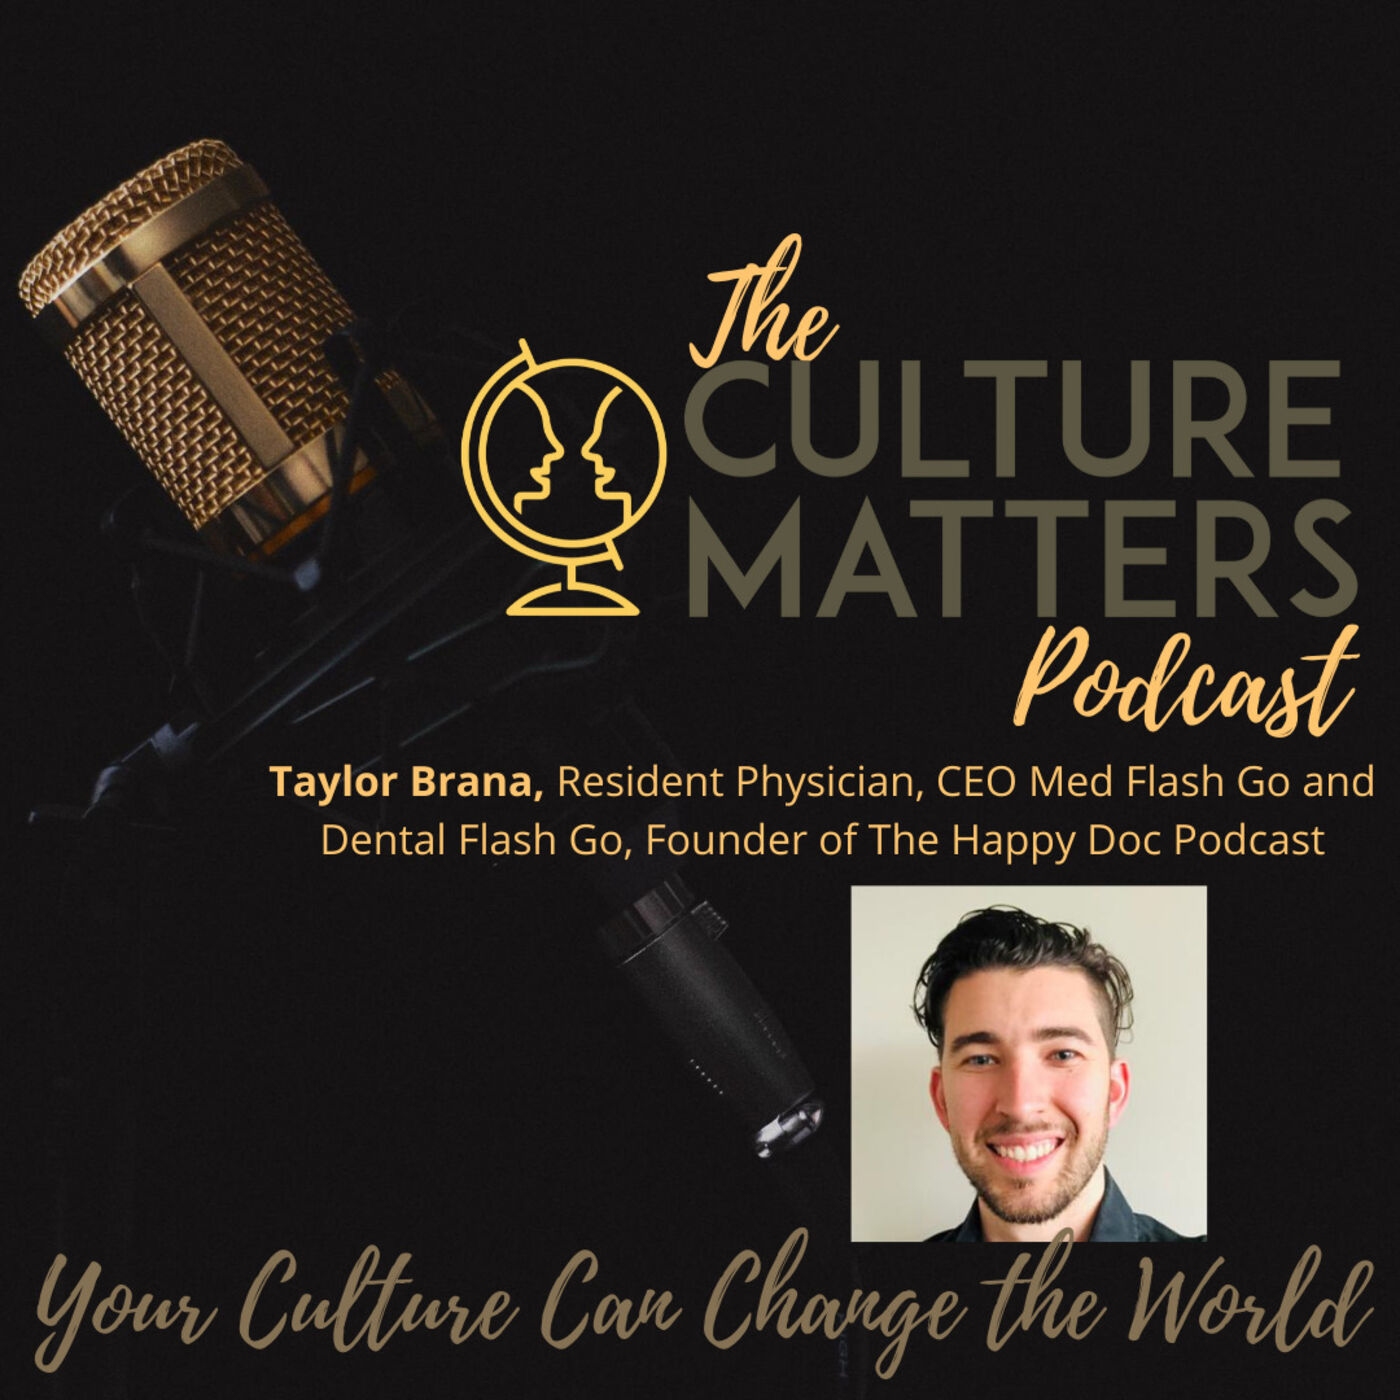 Season 6, Episode 68: Guest: Taylor Brana: Operate at a Higher Level